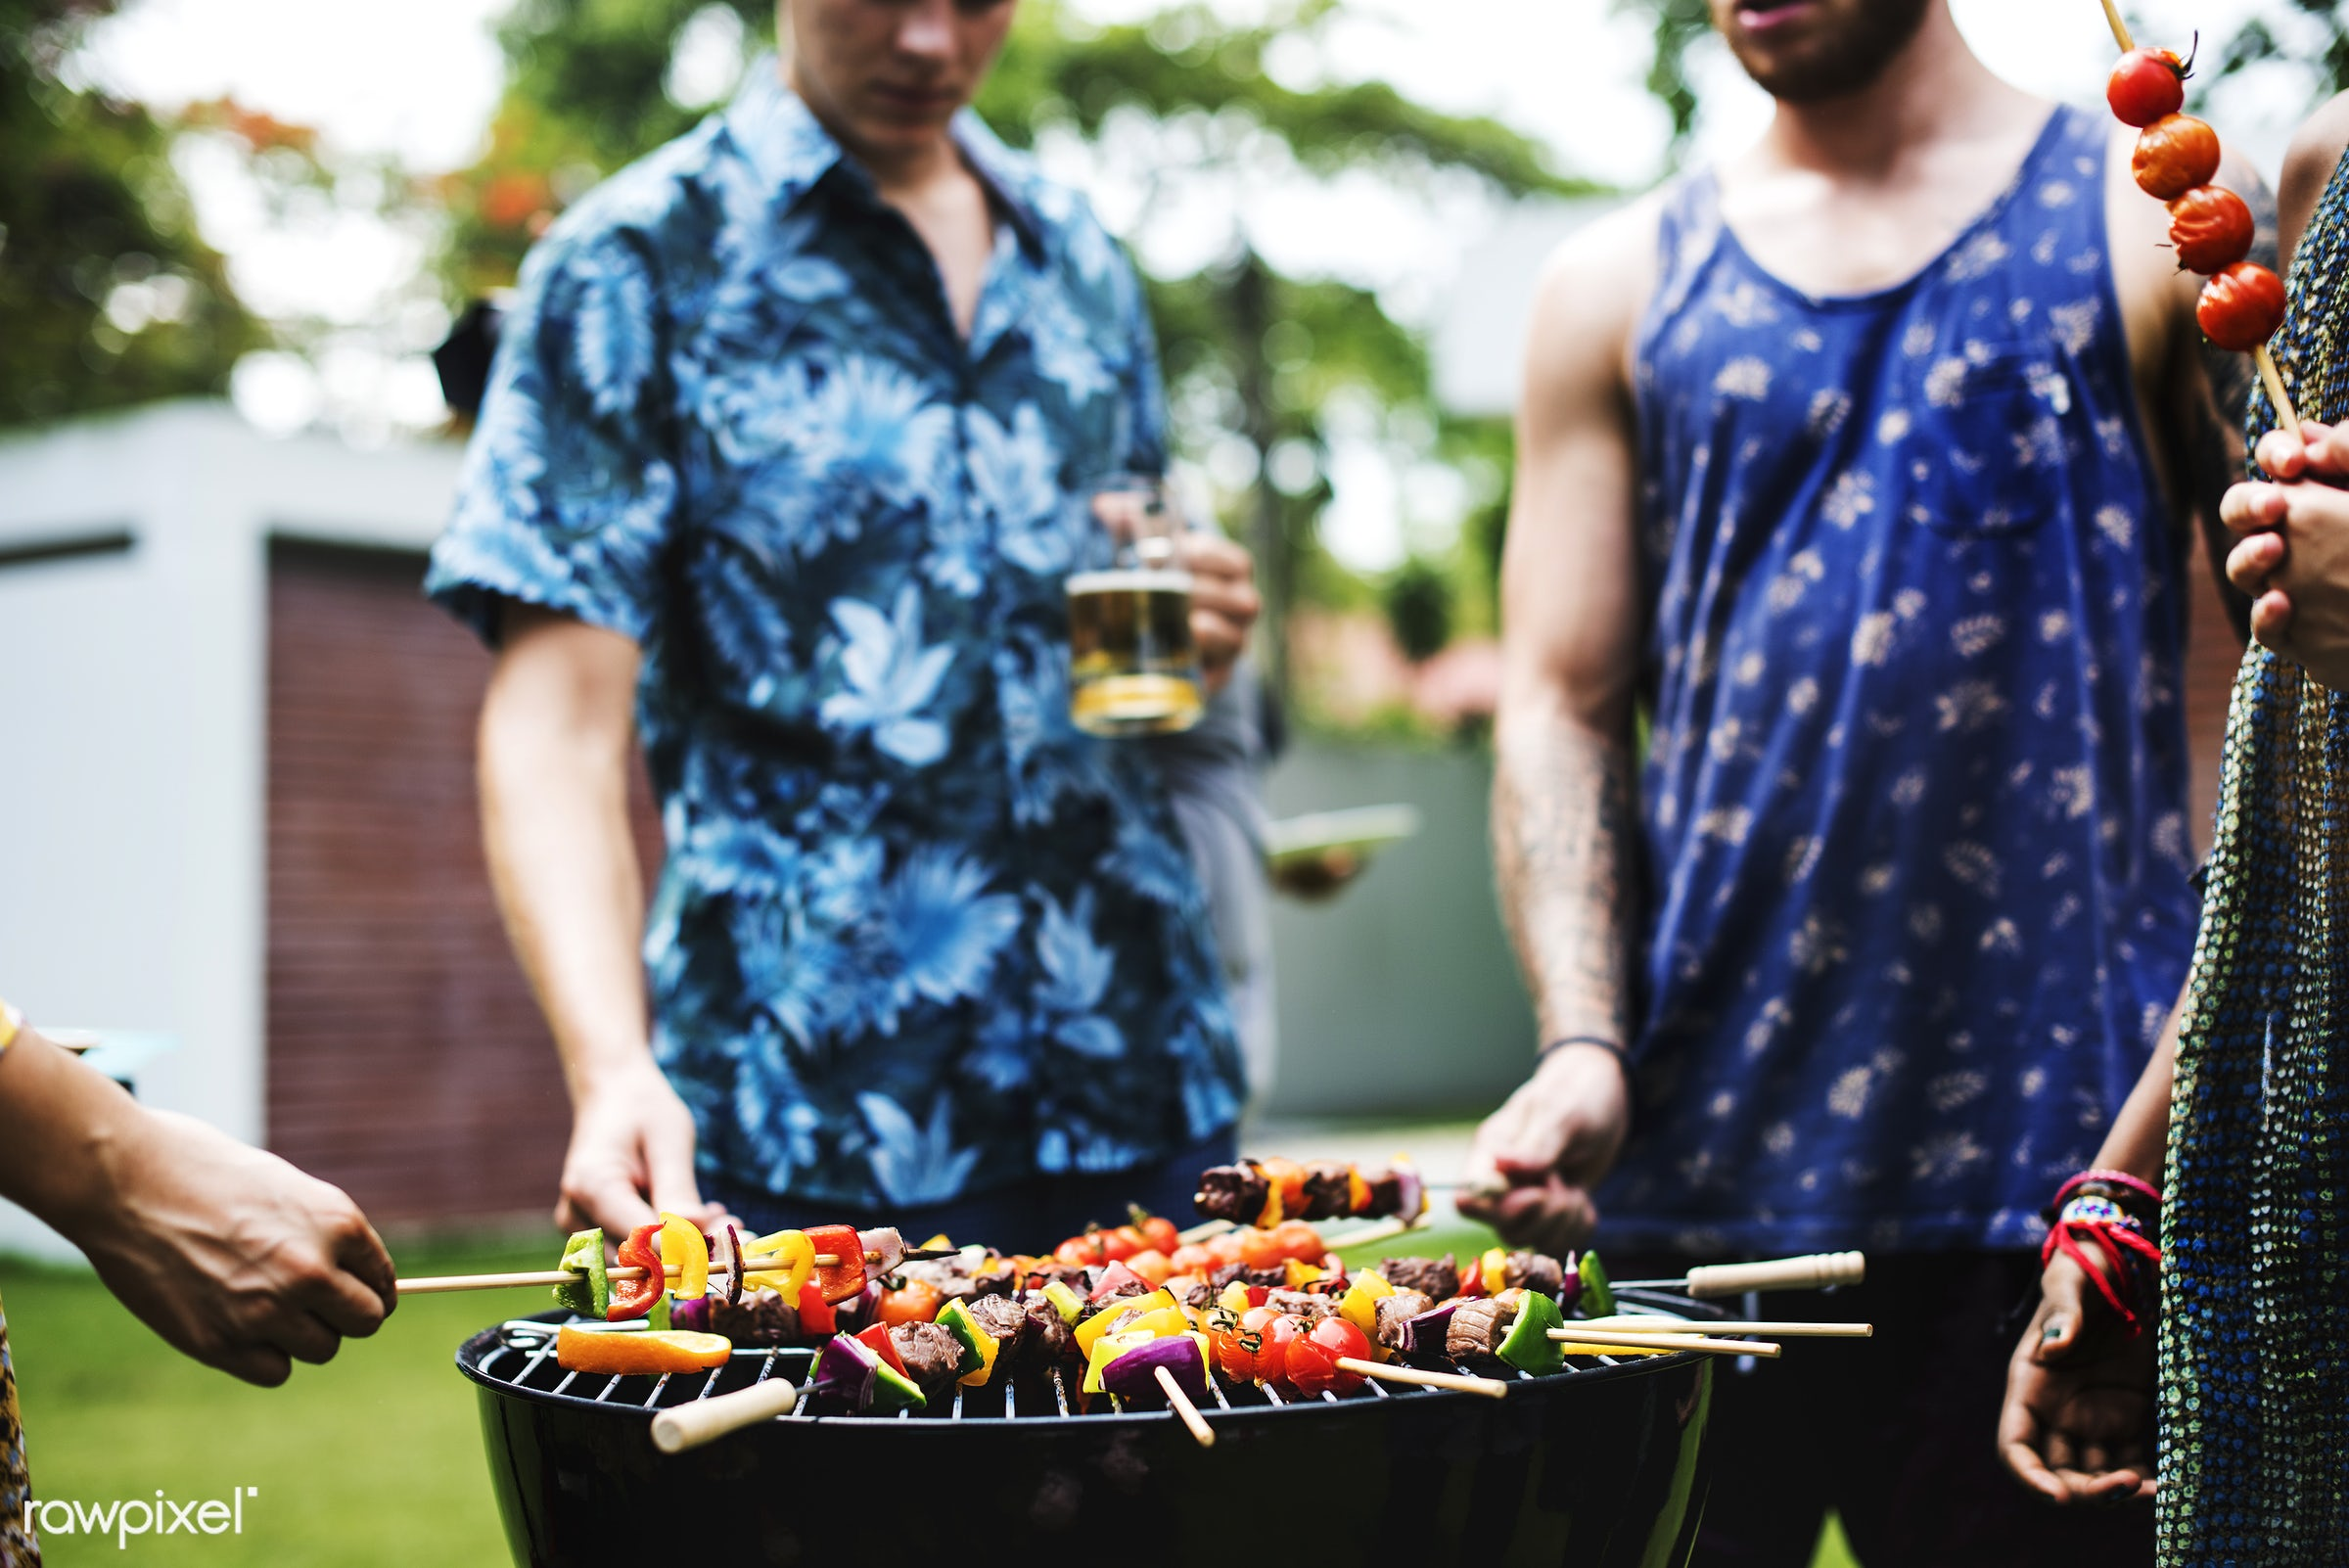 grill, yard, diverse, homemade, party, people, together, friends, hands, cooking, meats, bbq, activity, meal, park, grass,...